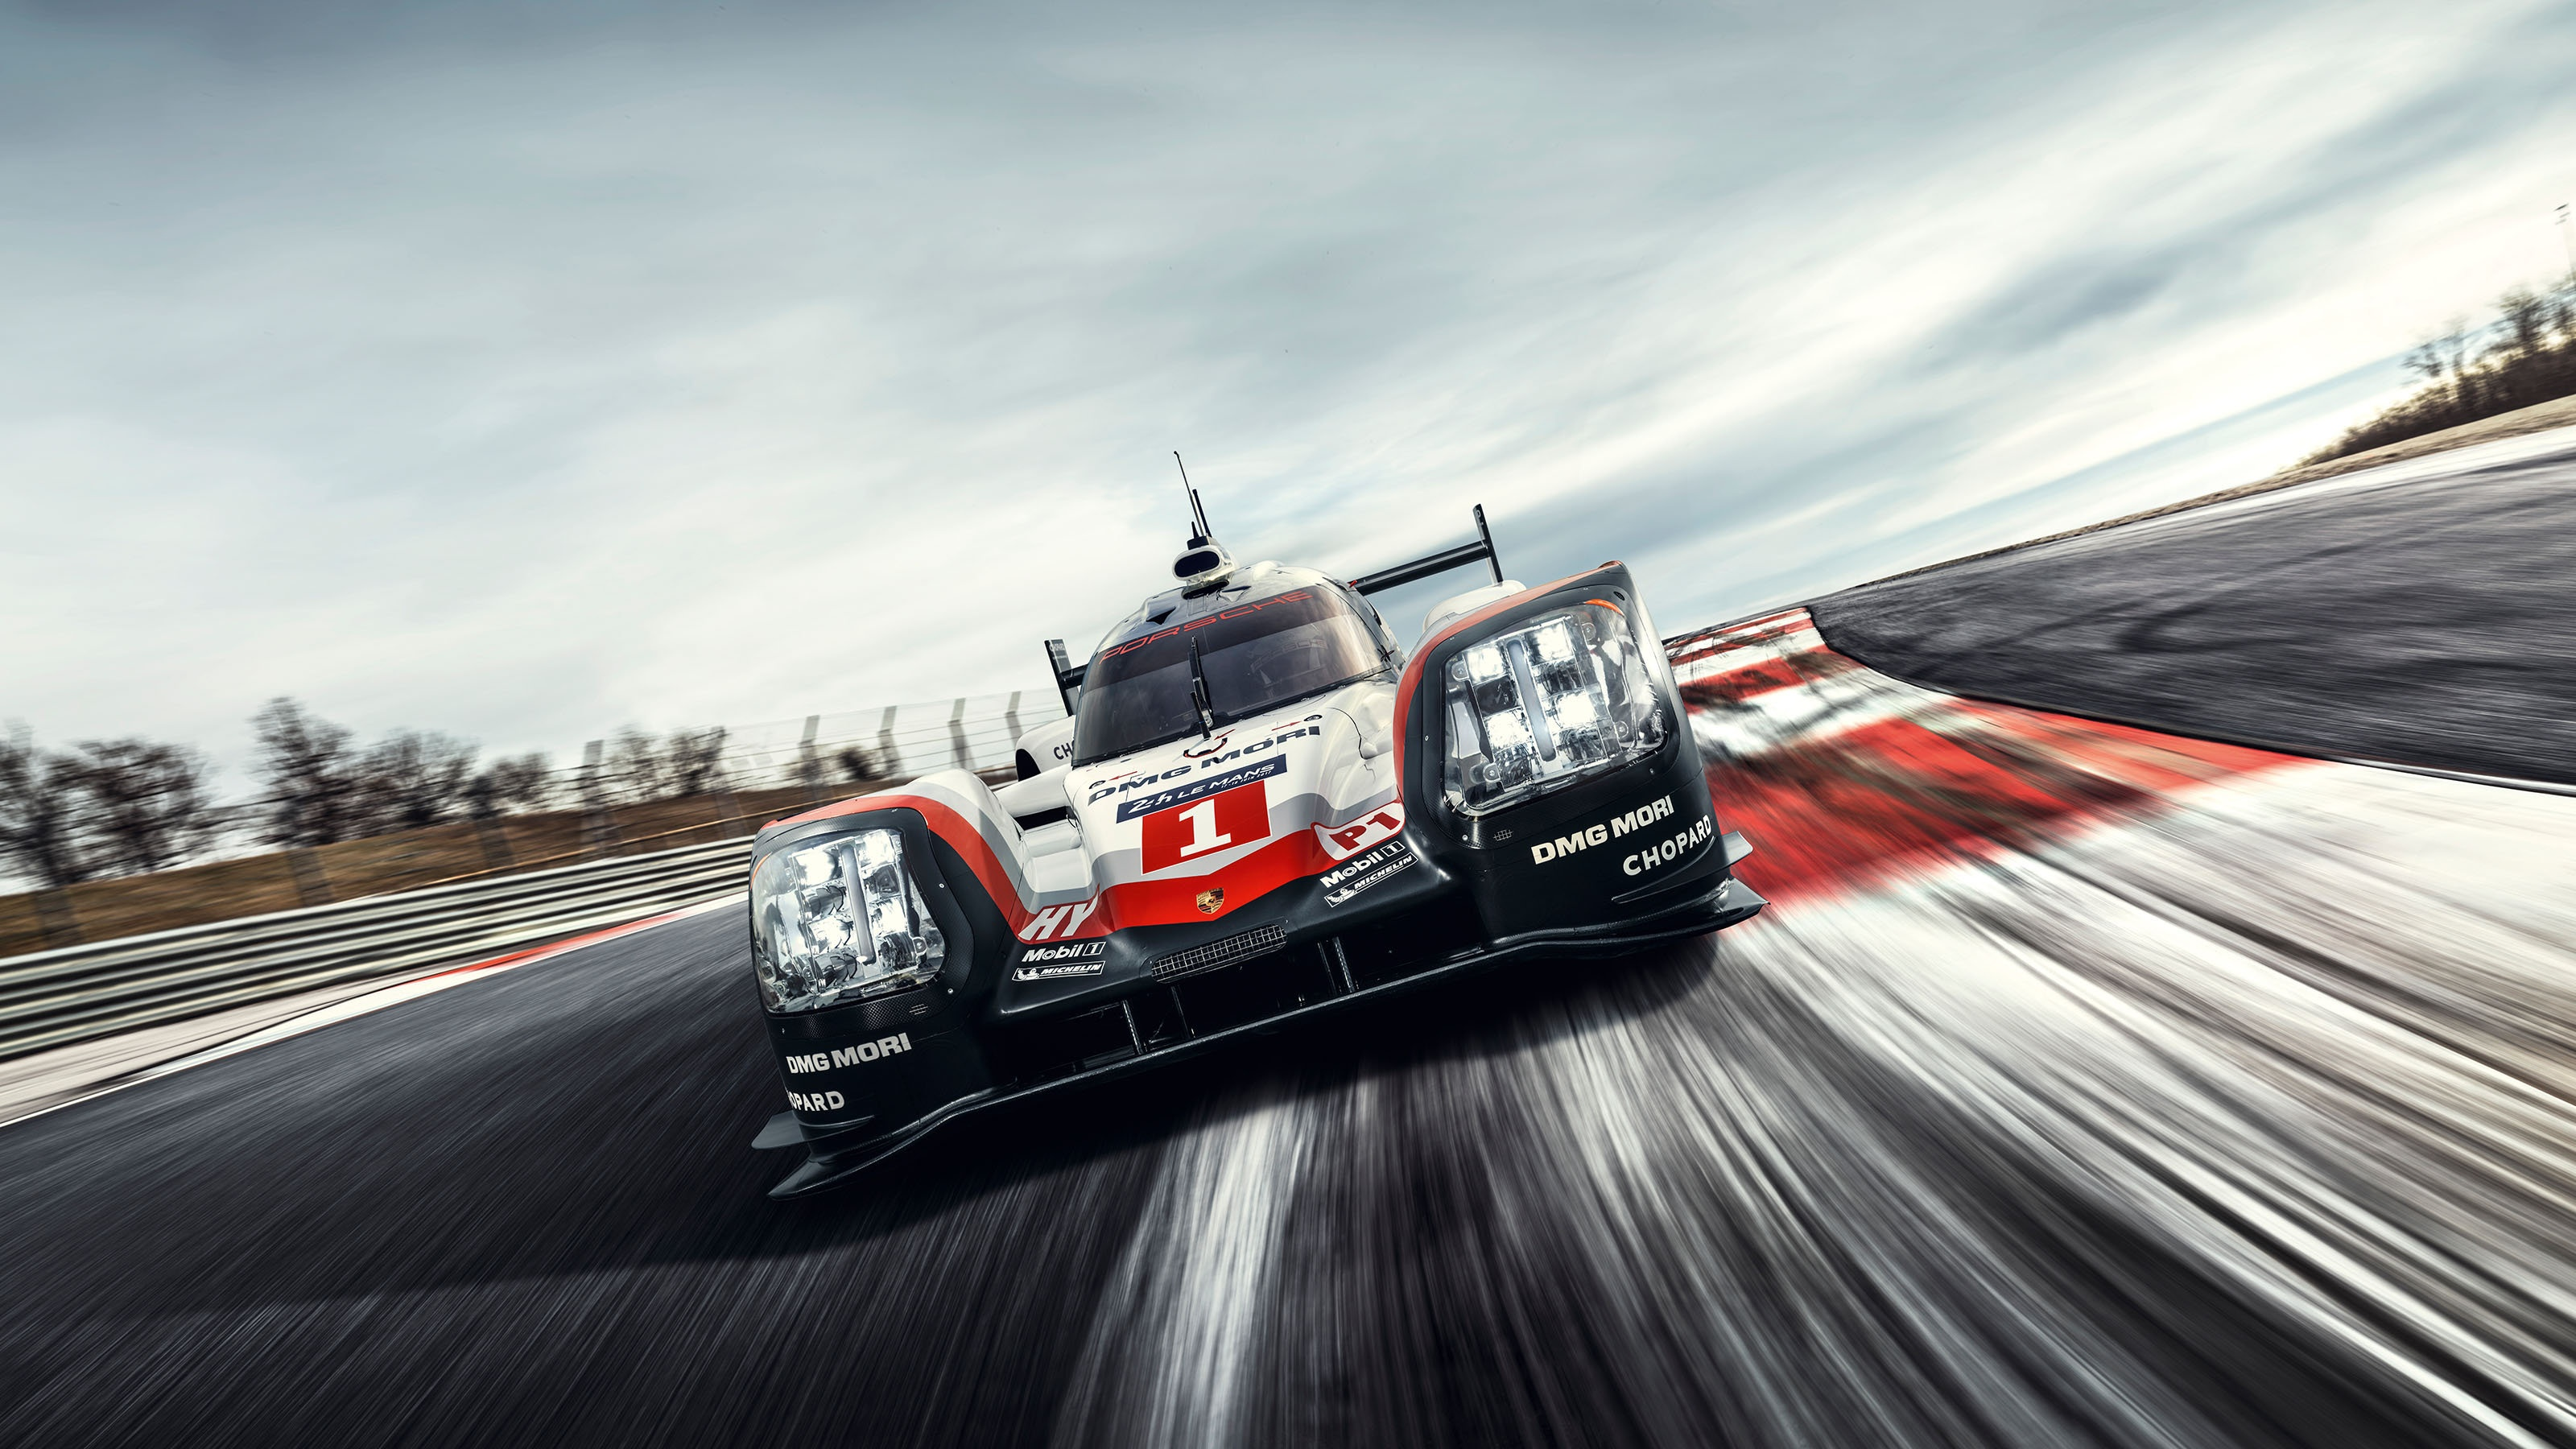 Porsche 919 Hybrid 9R9 17 Race Car 2017 Wallpaper